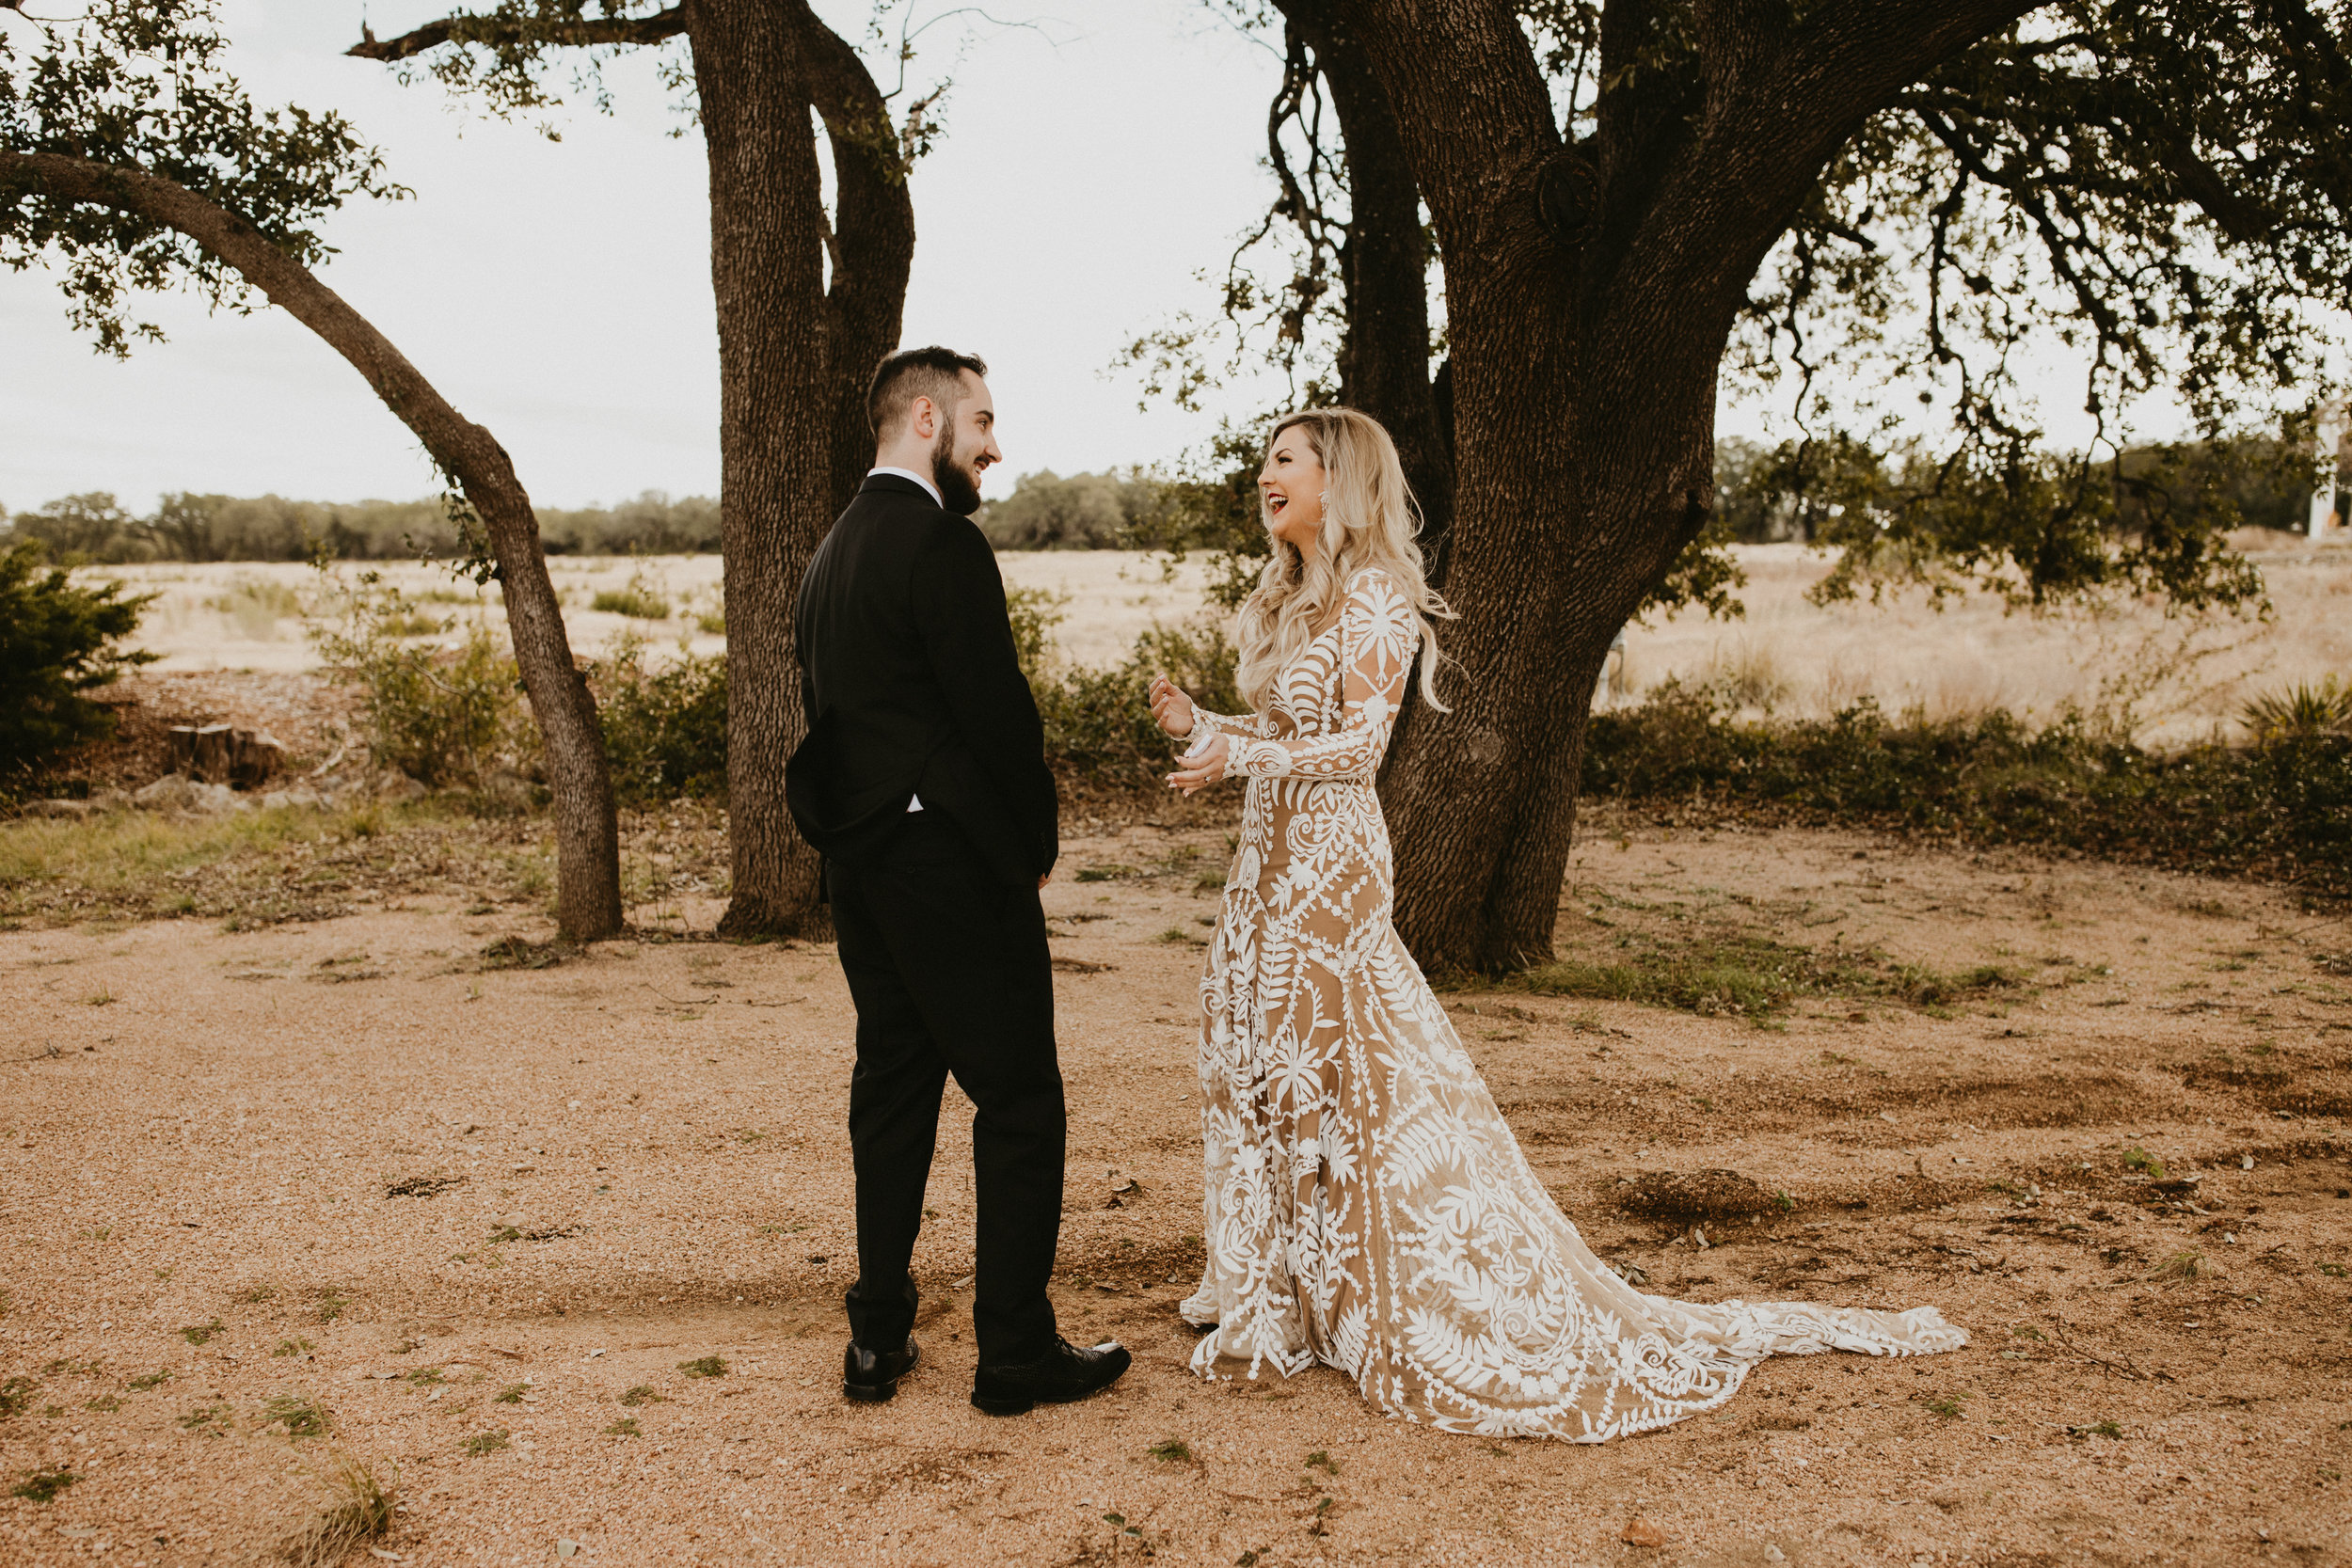 First look with groom wedding day prospect house austin texas + destination planner coordinator epoch co + century tree productions